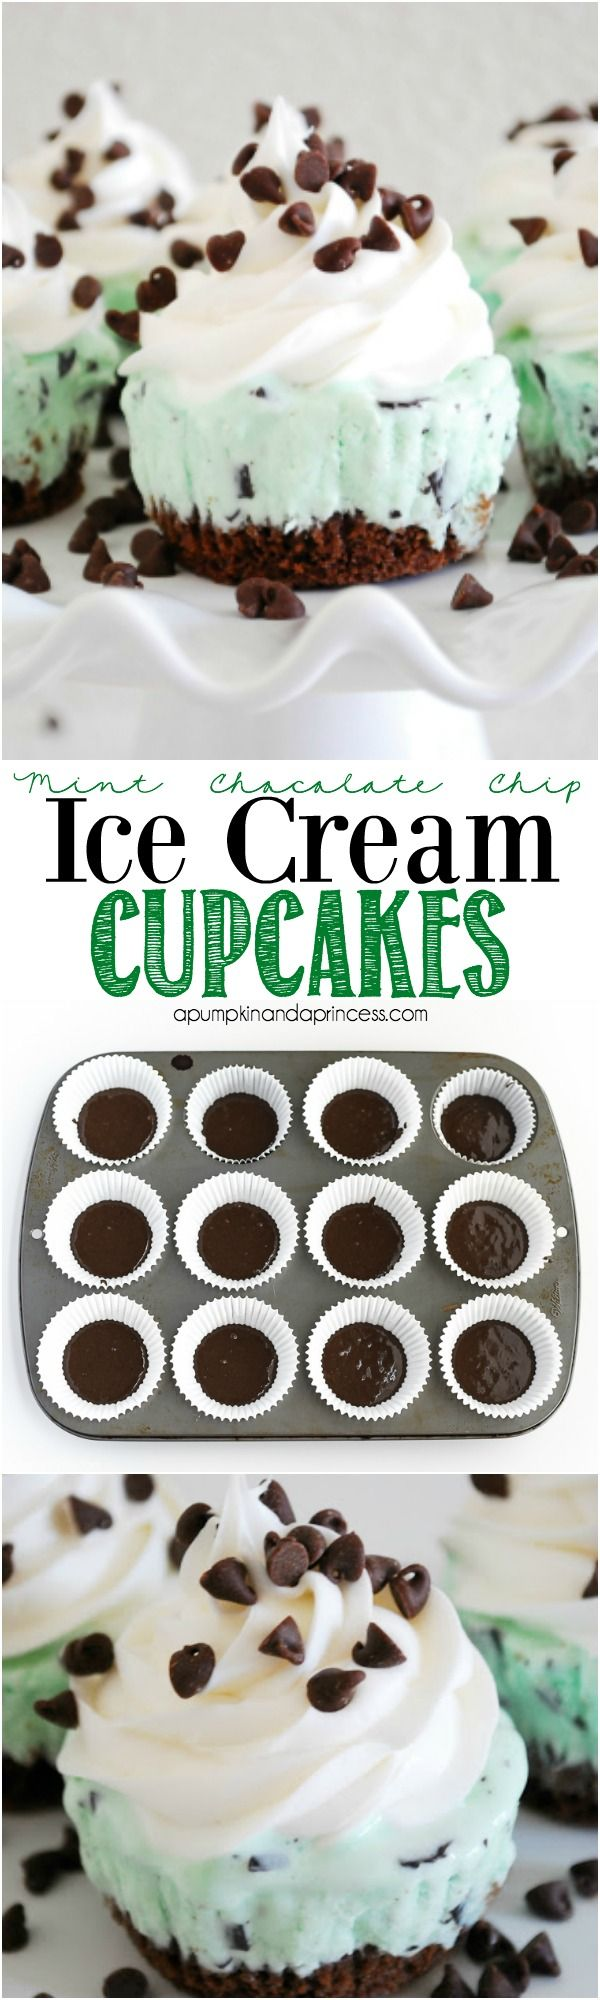 Mint Chocolate Chip Ice Cream Cupcakes from @crystalowens will keep you super cool at your summer party!